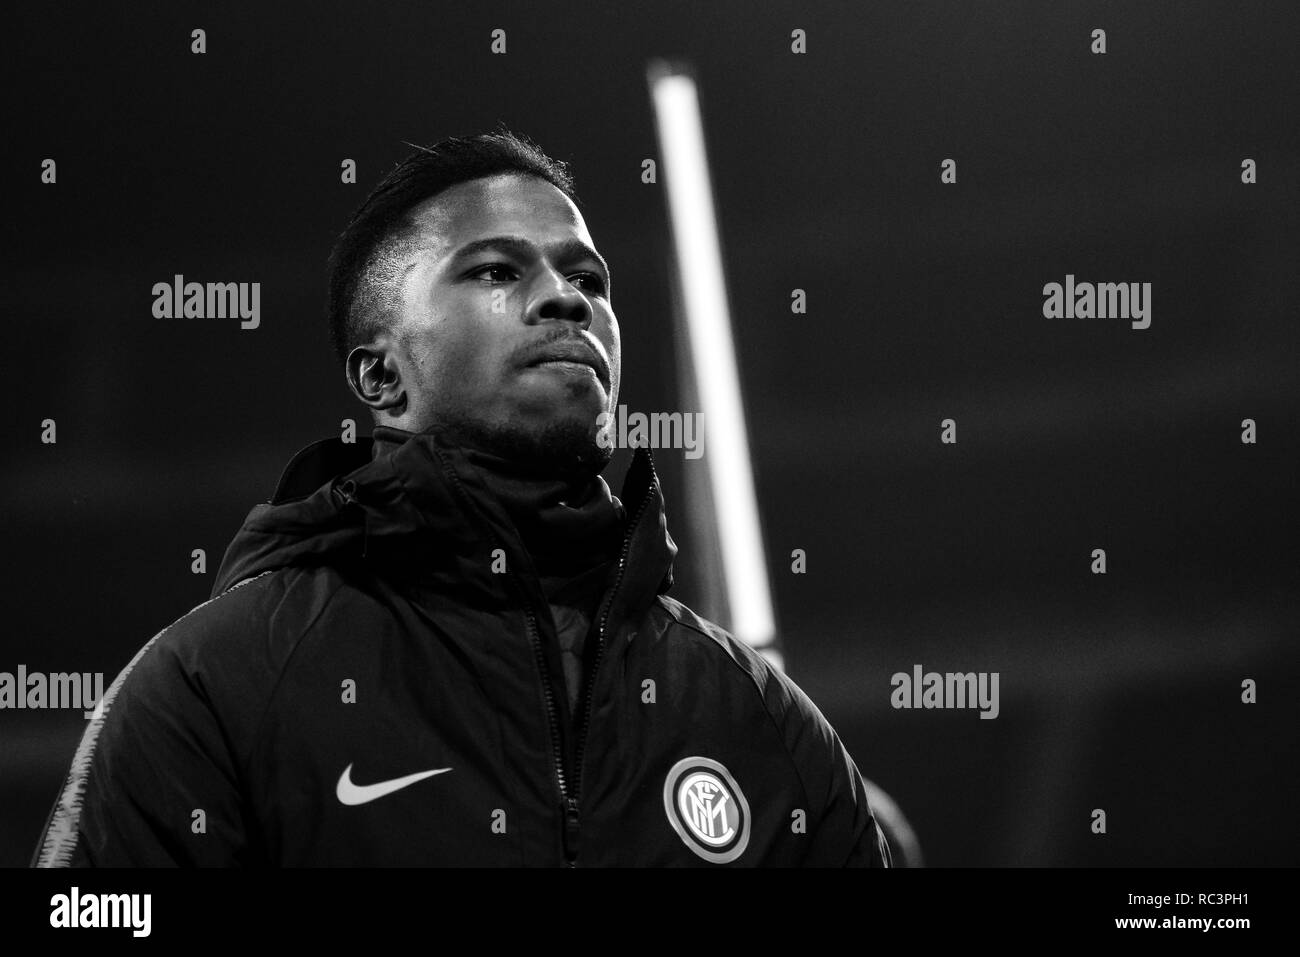 Black and White image of forward Keita Balde (Inter) prior to the Italian Cup 'Coppa Italia' football match, Inter Milan vs Benevento Calcio at San Siro Meazza Stadium in Milan, Italy on 13 January 2019. The football match is played behind closed doors after Napoli's Senegalese player Kalidou Koulibaly was subject to racist chants by FC Internazionale's 'ultra' fans during the Boxing Day match. Credit: Piero Cruciatti/Alamy Live News - Stock Image